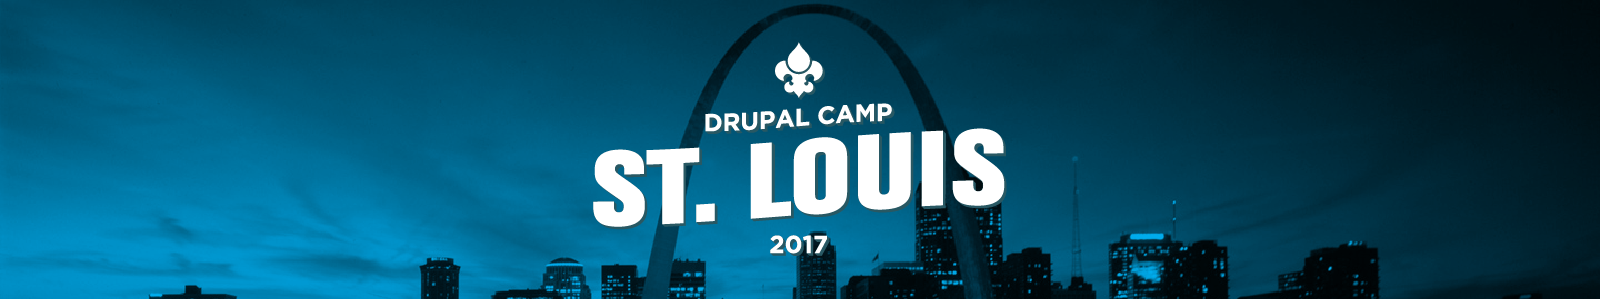 DrupalCamp St. Louis 2017